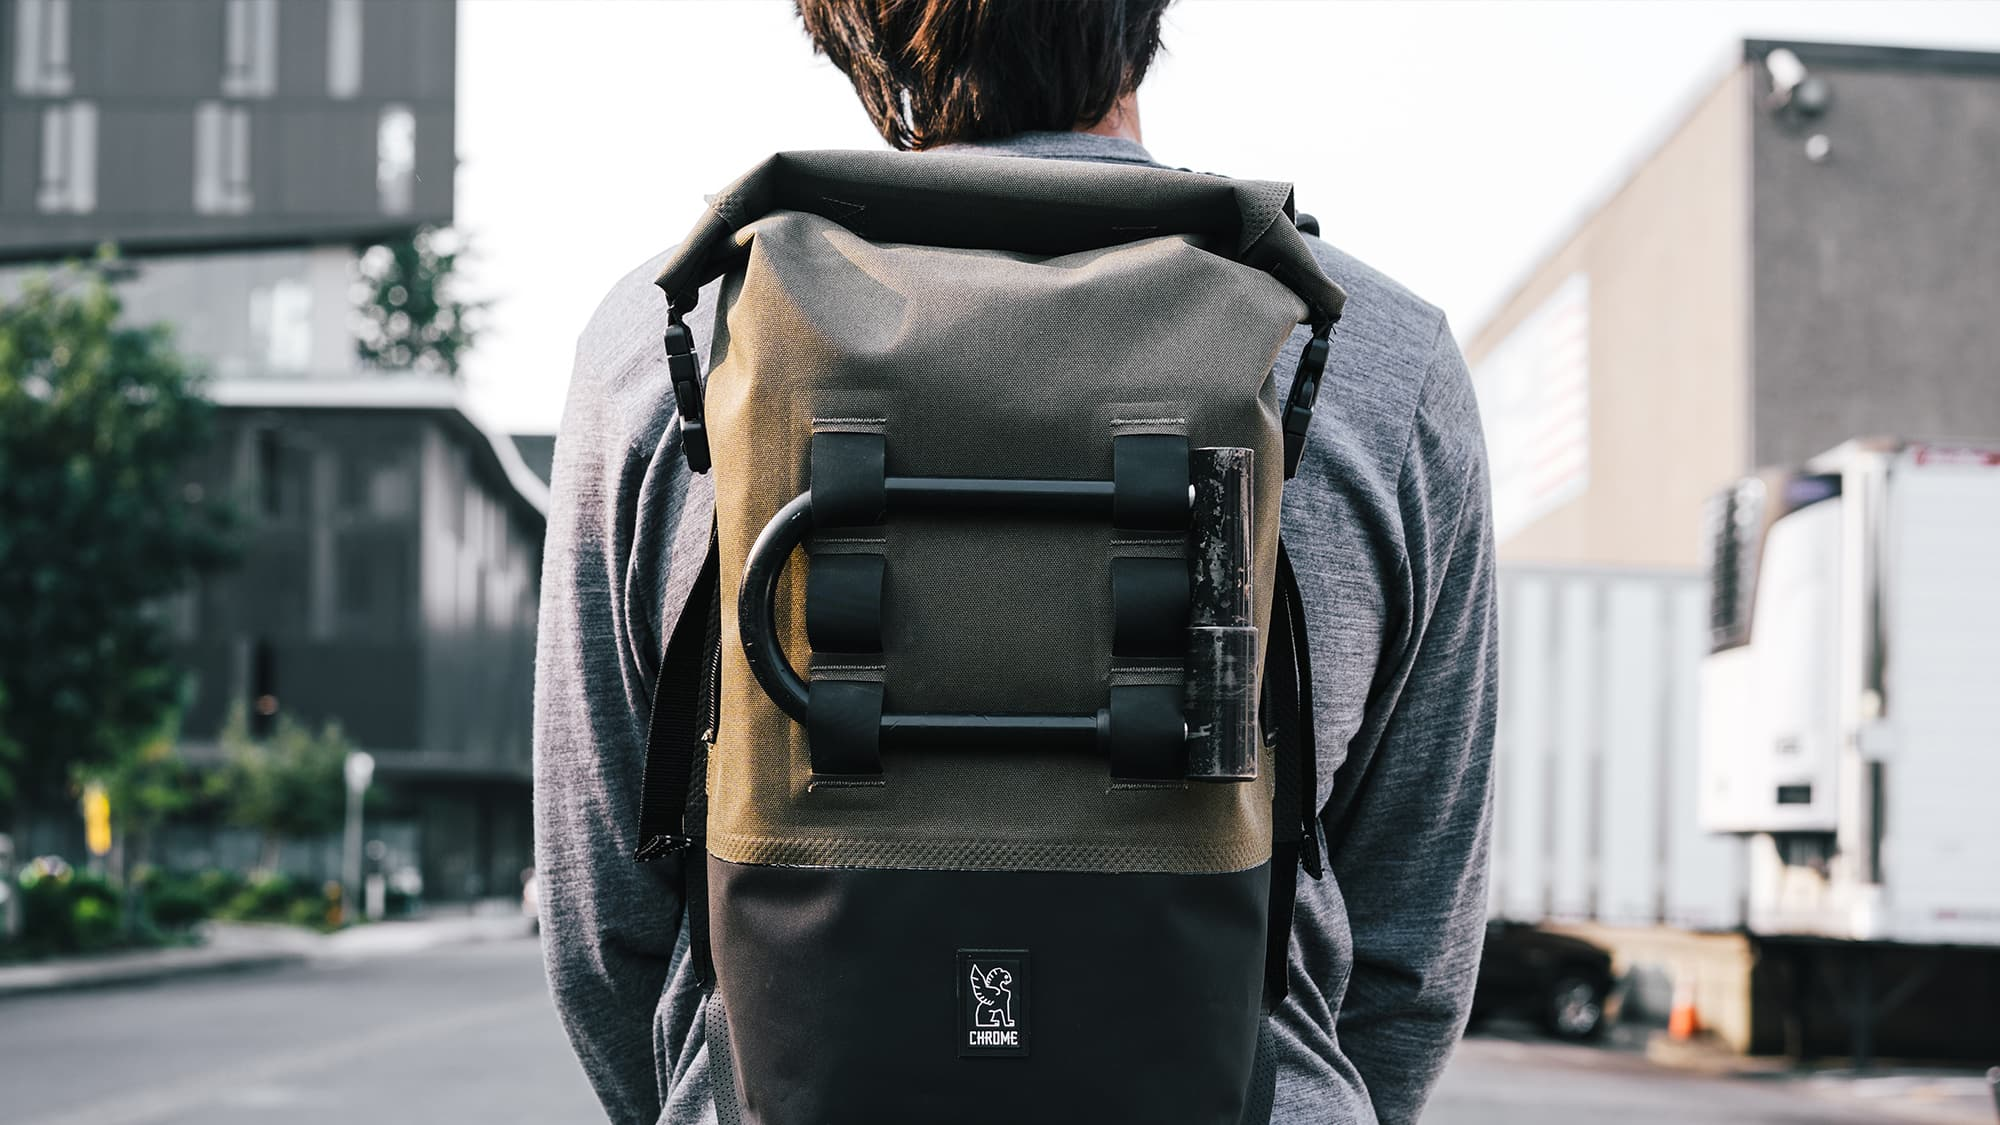 Urban Ex Rolltop 18L Backpack, ease of opening